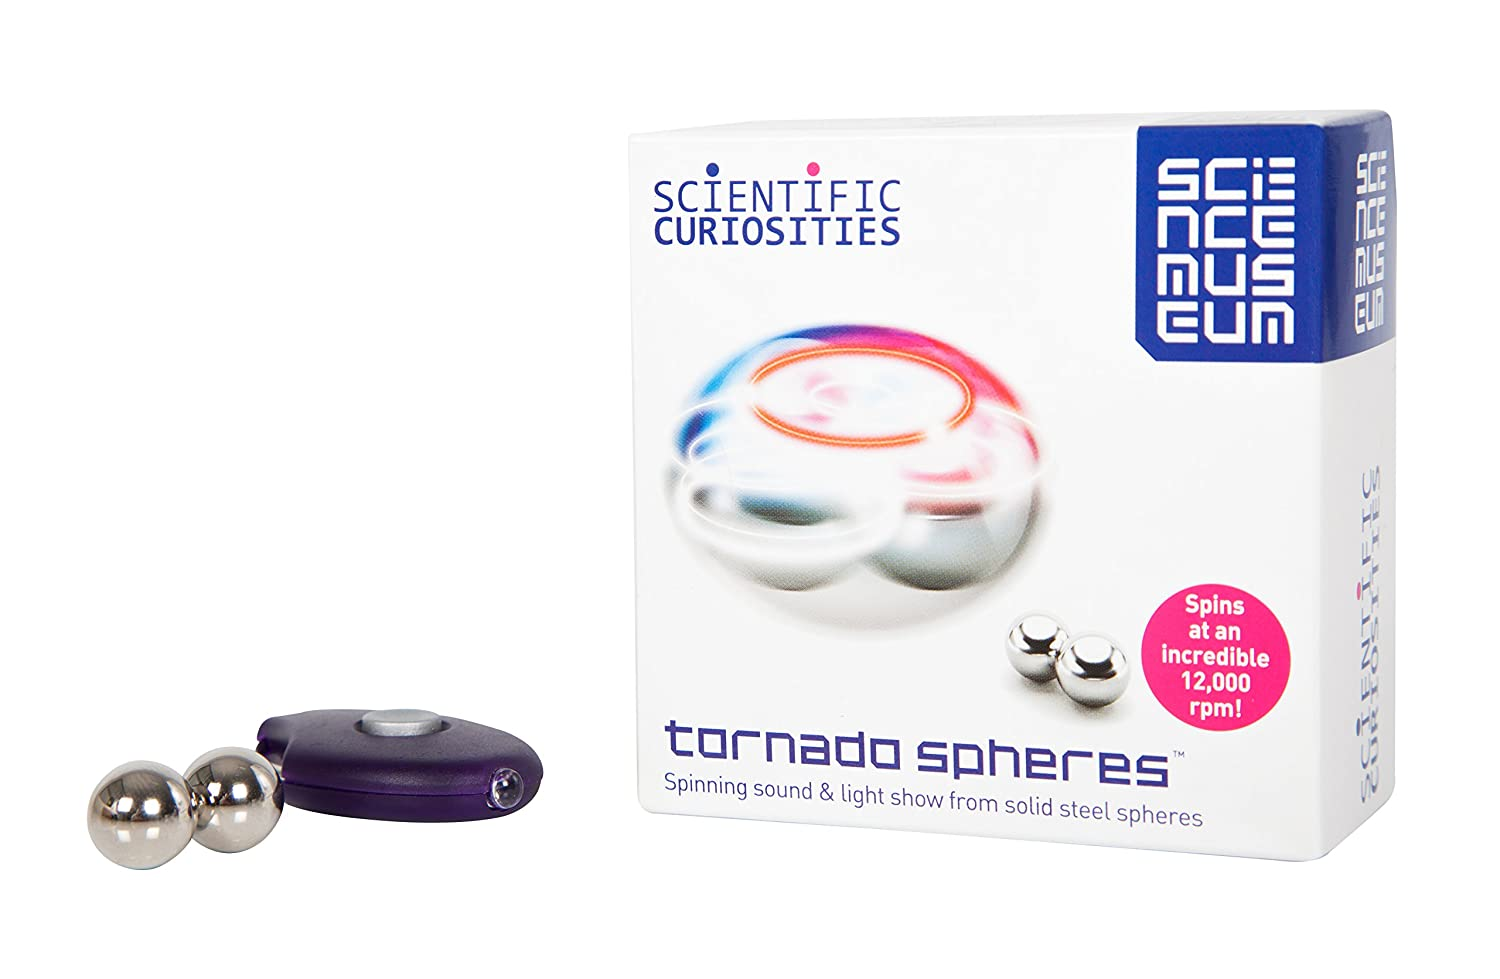 Introduce To Science - Children Kids Boy Girl Boys Girls - Top Selling Science Museum Tornado Spheres - Wonderful Idea for Stocking Filler Christmas Xmas Easter or Birthday Present Gift - Age 8+ Jardines Online Warehouse